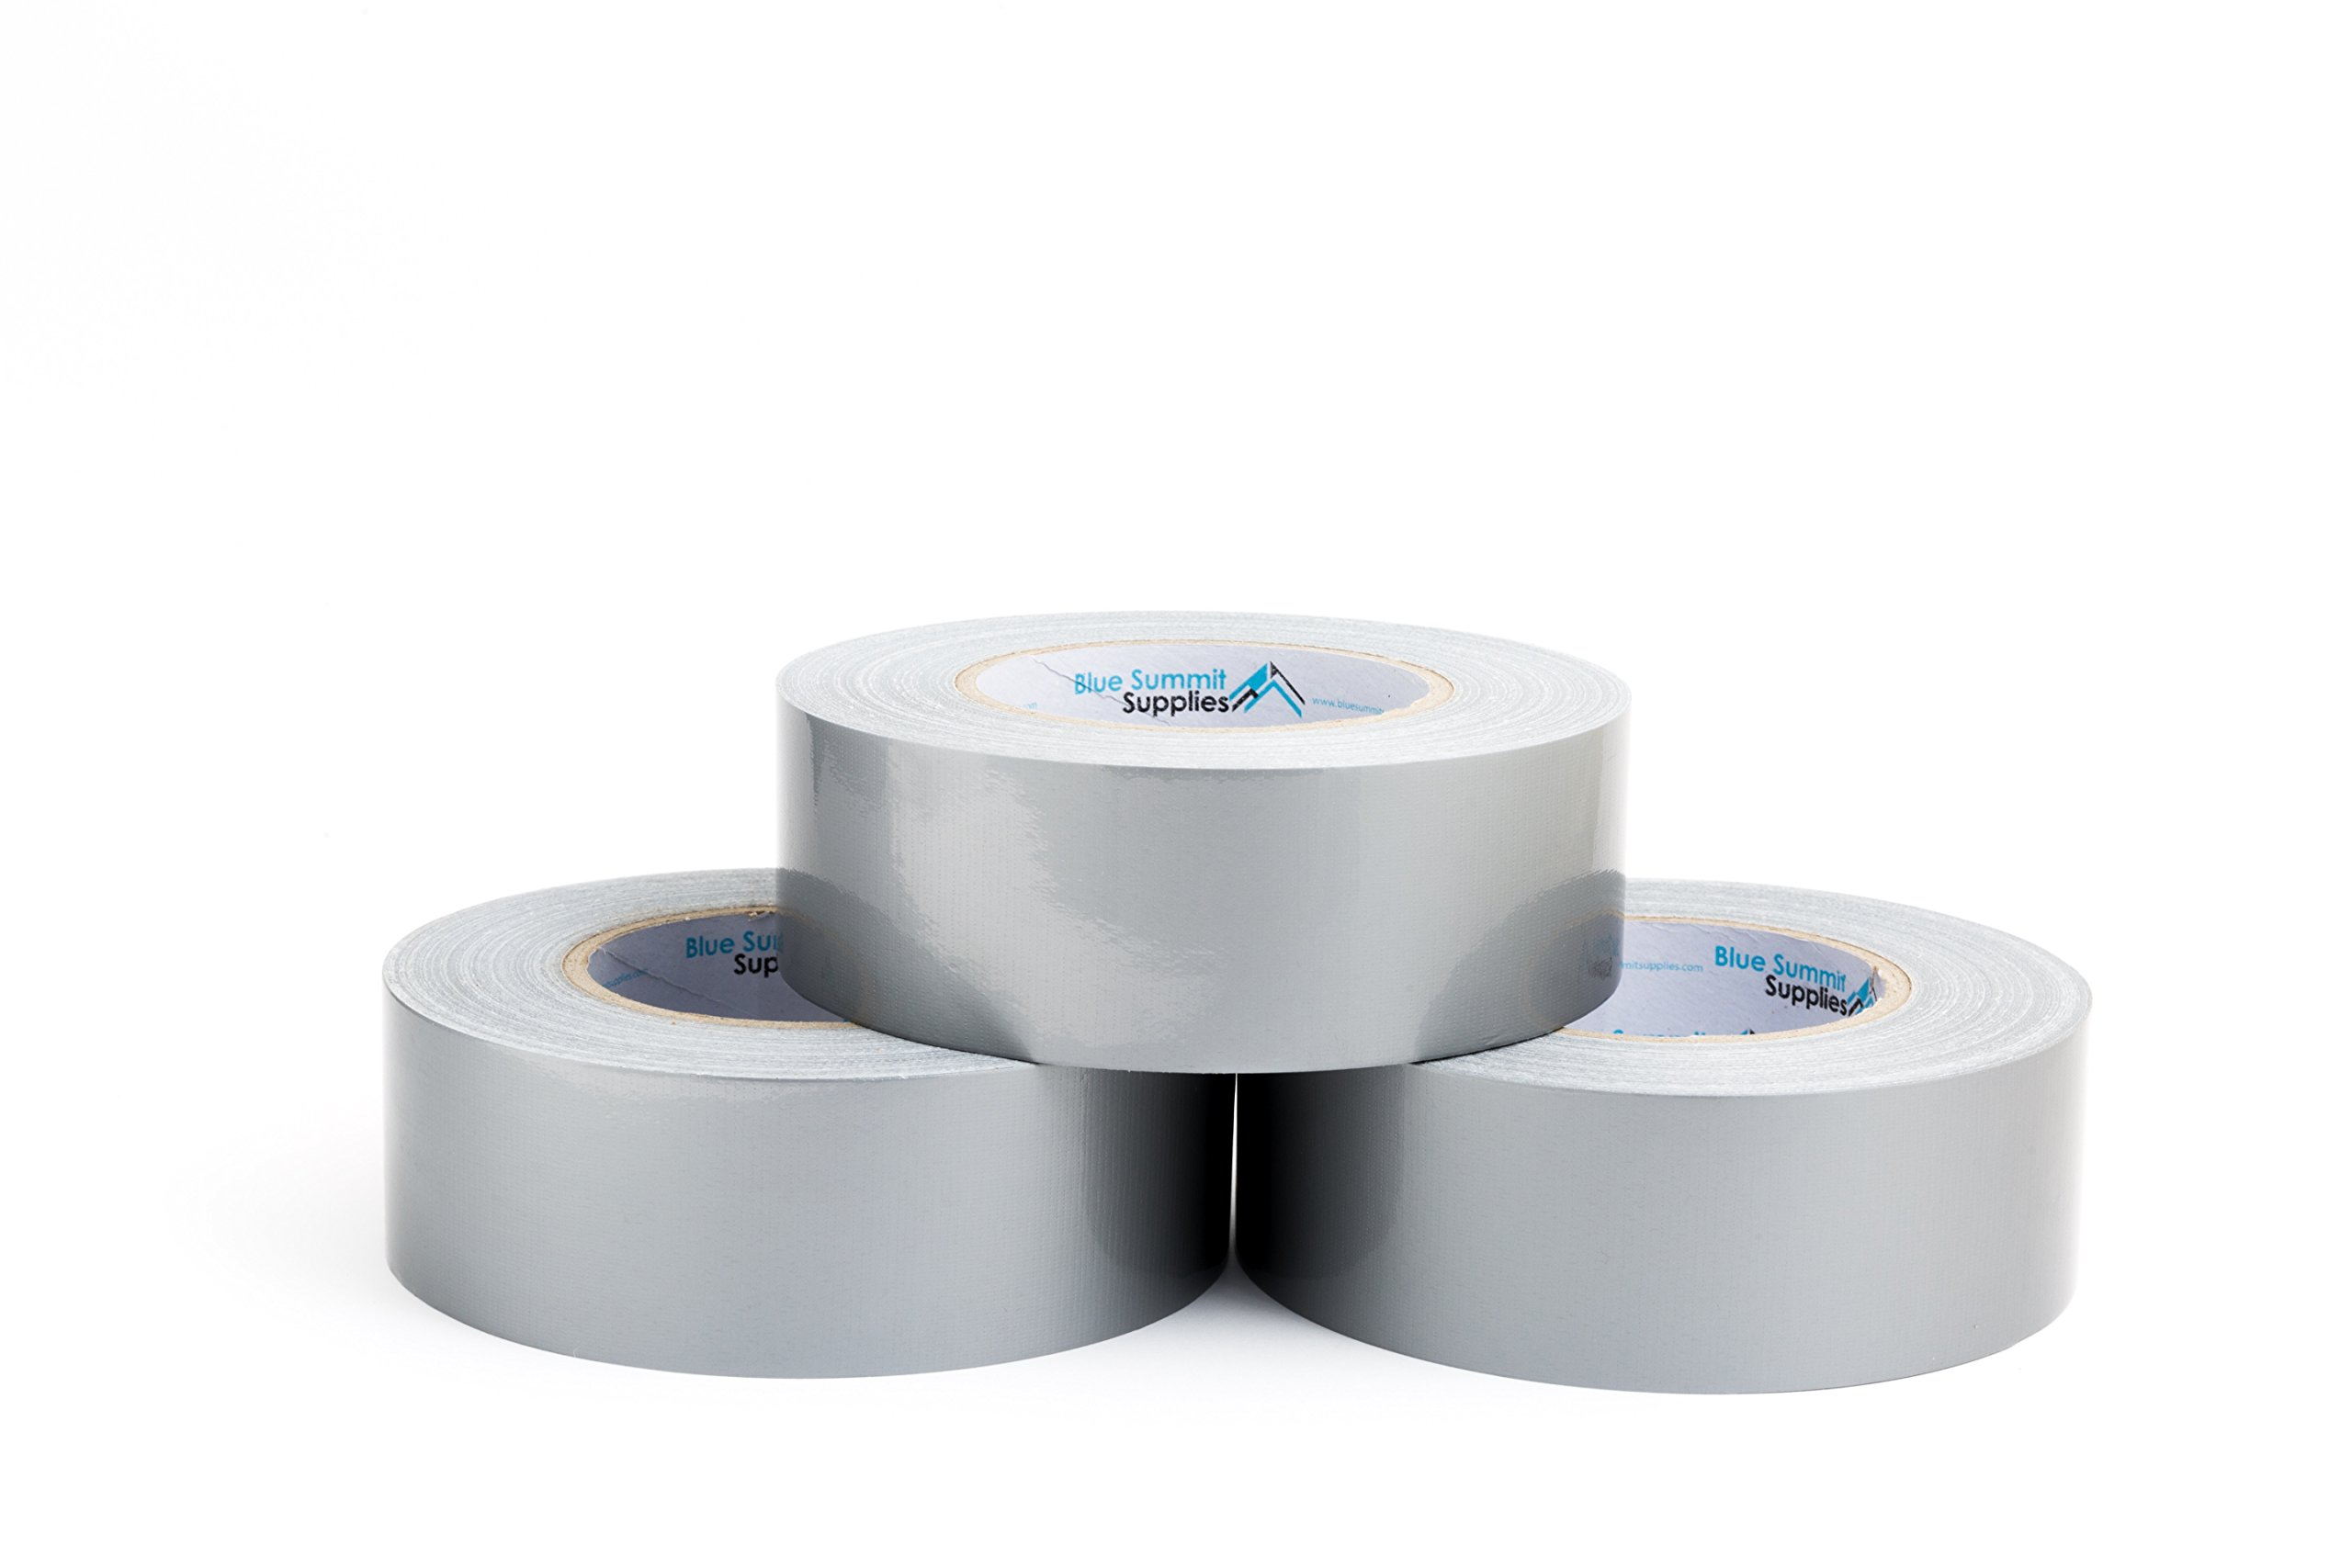 3 Pack Duct Tape, tear by hand design, silver, strong 7.3mil thickness, designed for home and office use with commercial grade strength, 60 Yard Length, 180 Total Yards by Blue Summit Supplies (Image #1)